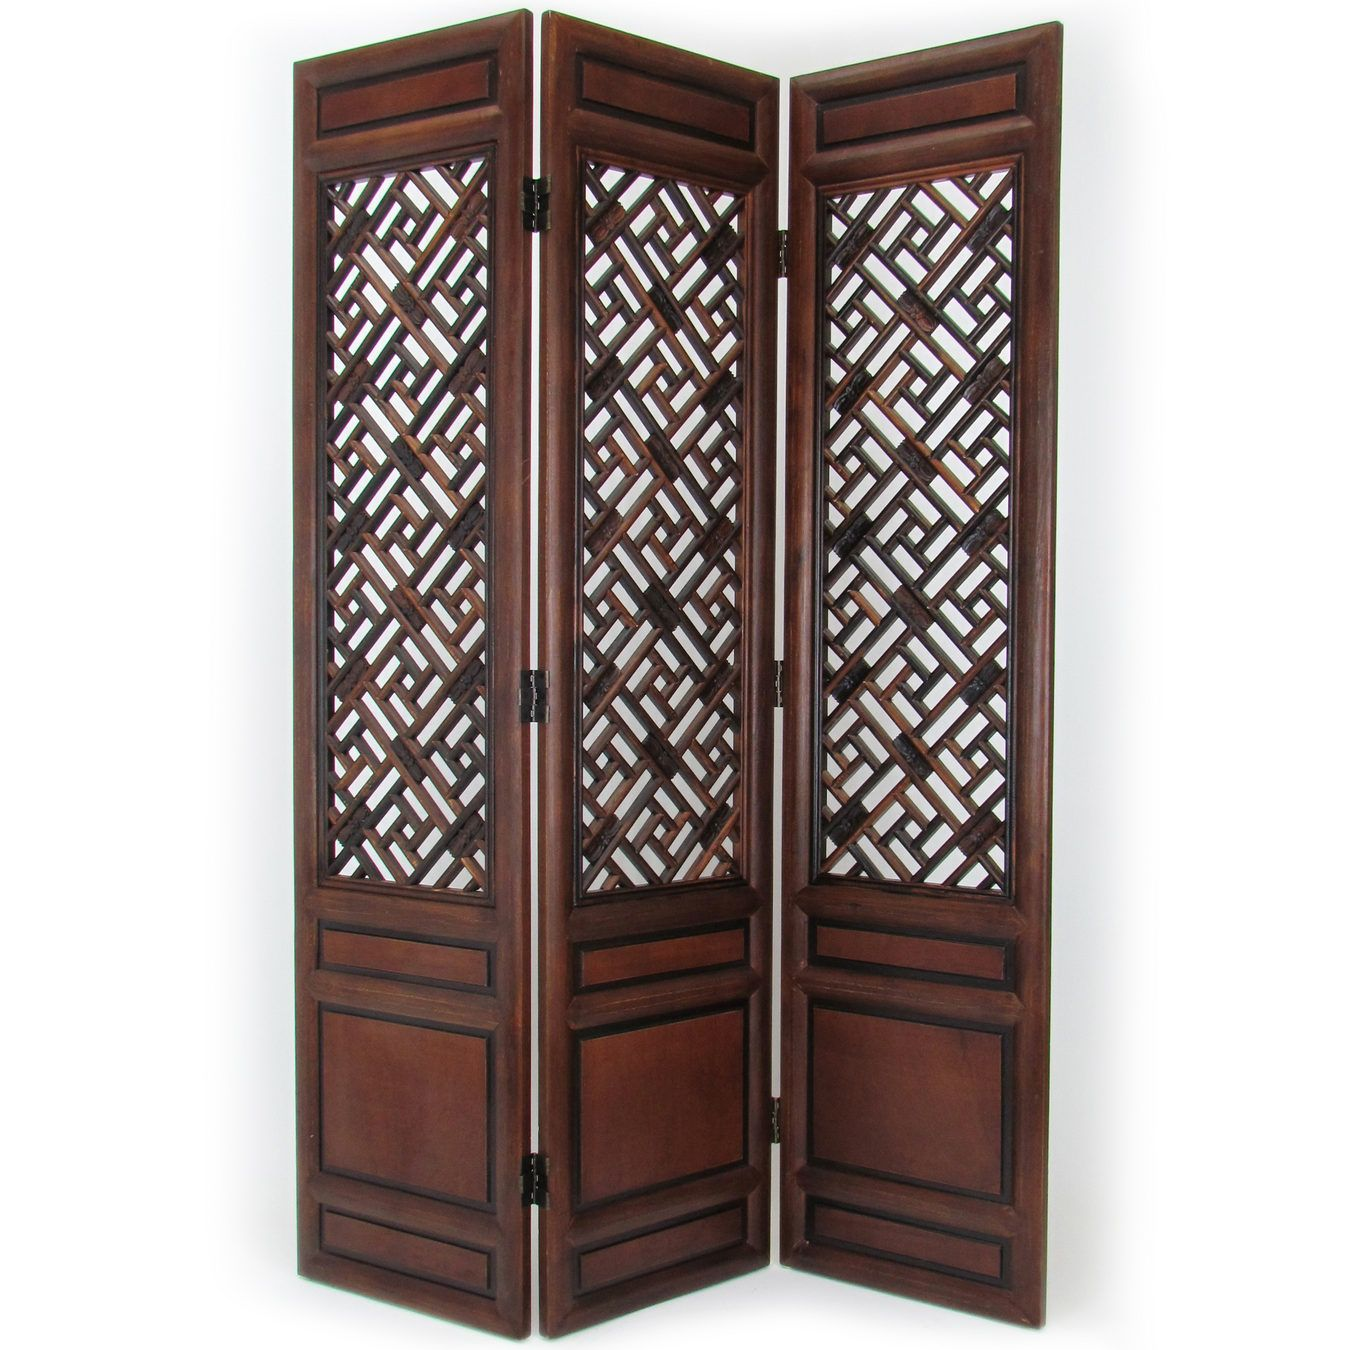 6 1 3 ft Tall Ming Cathay Room Divider OrientalFurniture